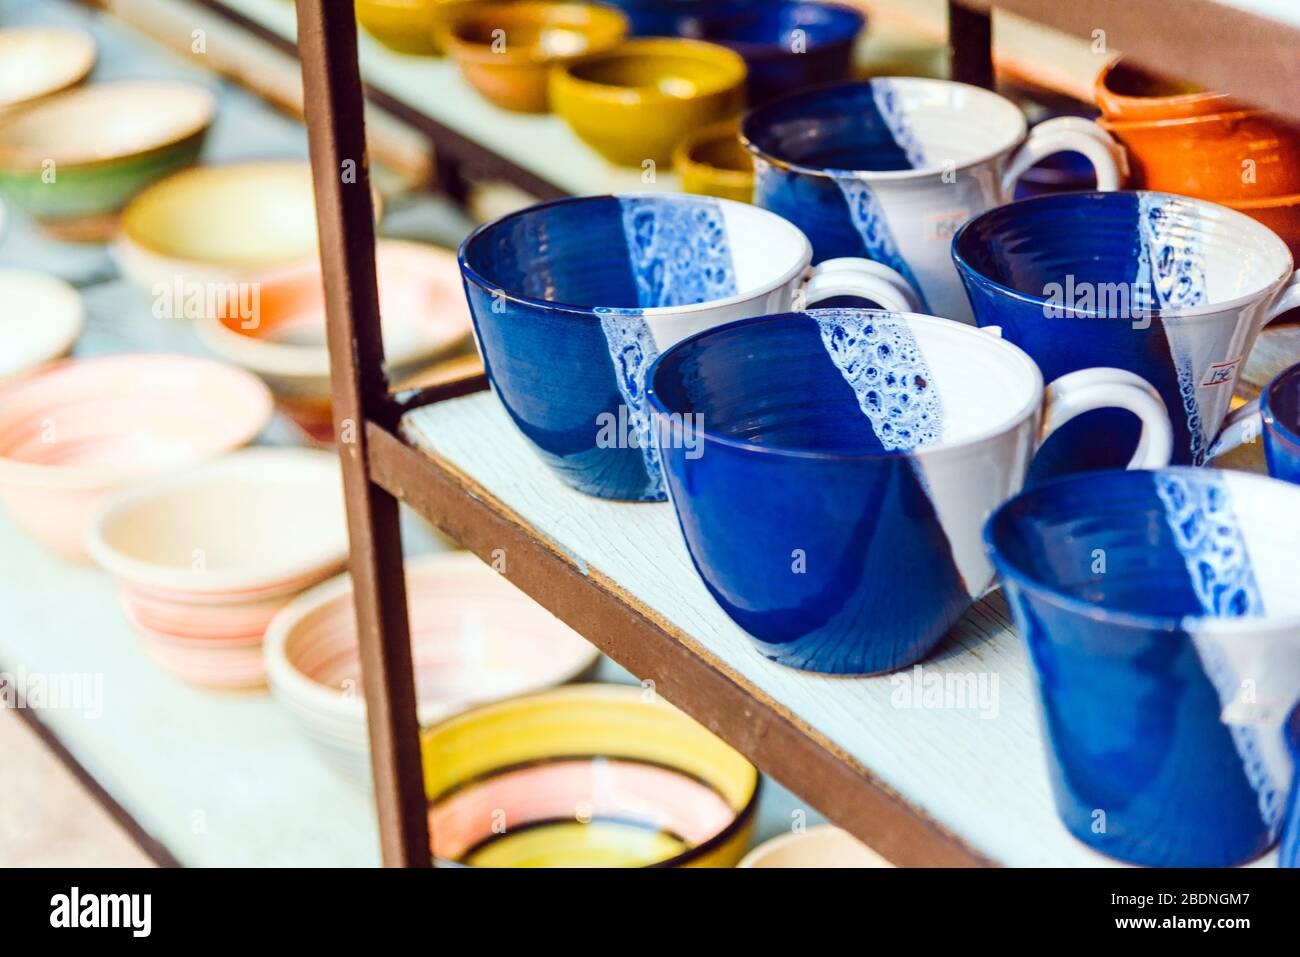 Beautiful Handmade Pottery Cup And Bowls Art Craftmanship Concept Stock Photo Alamy